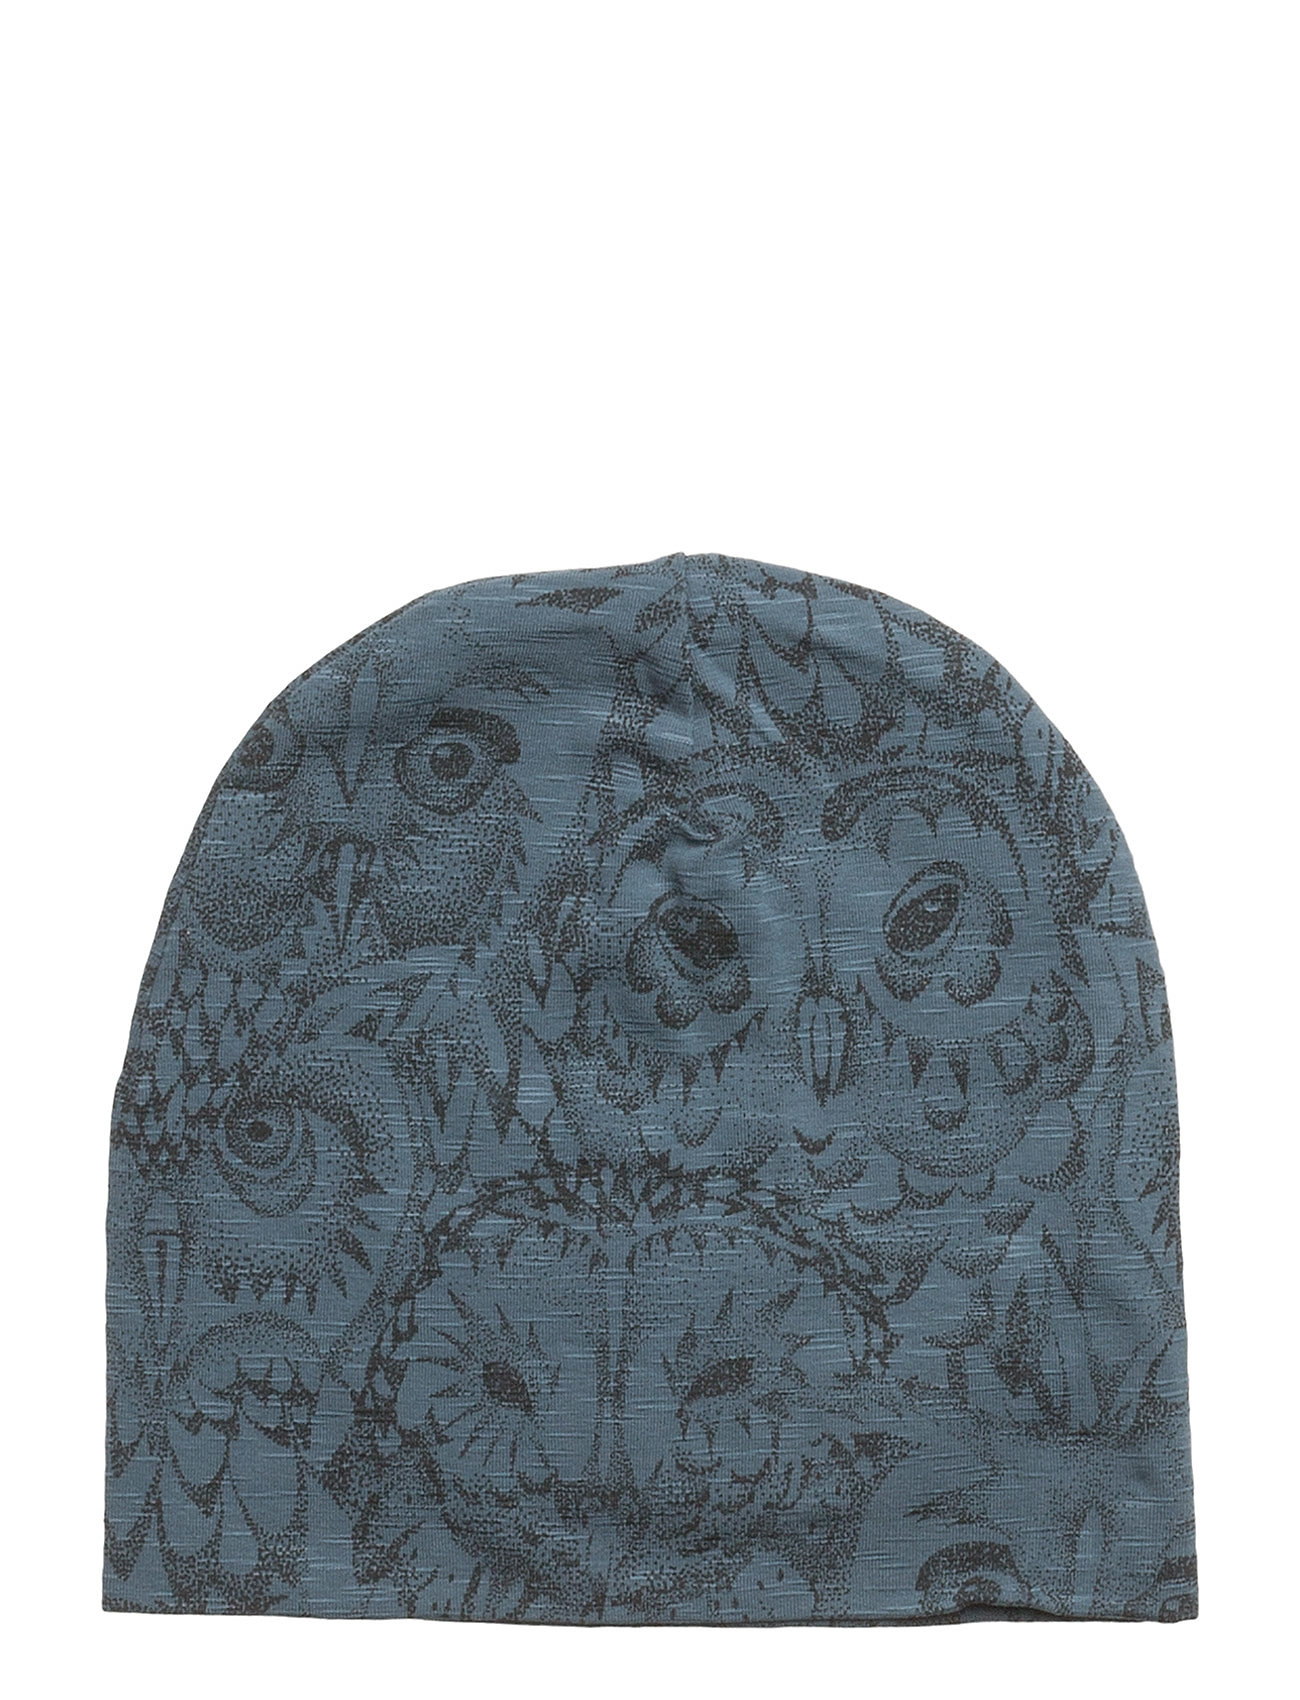 Soft Gallery Beanie - ORION BLUE, AOP OWL